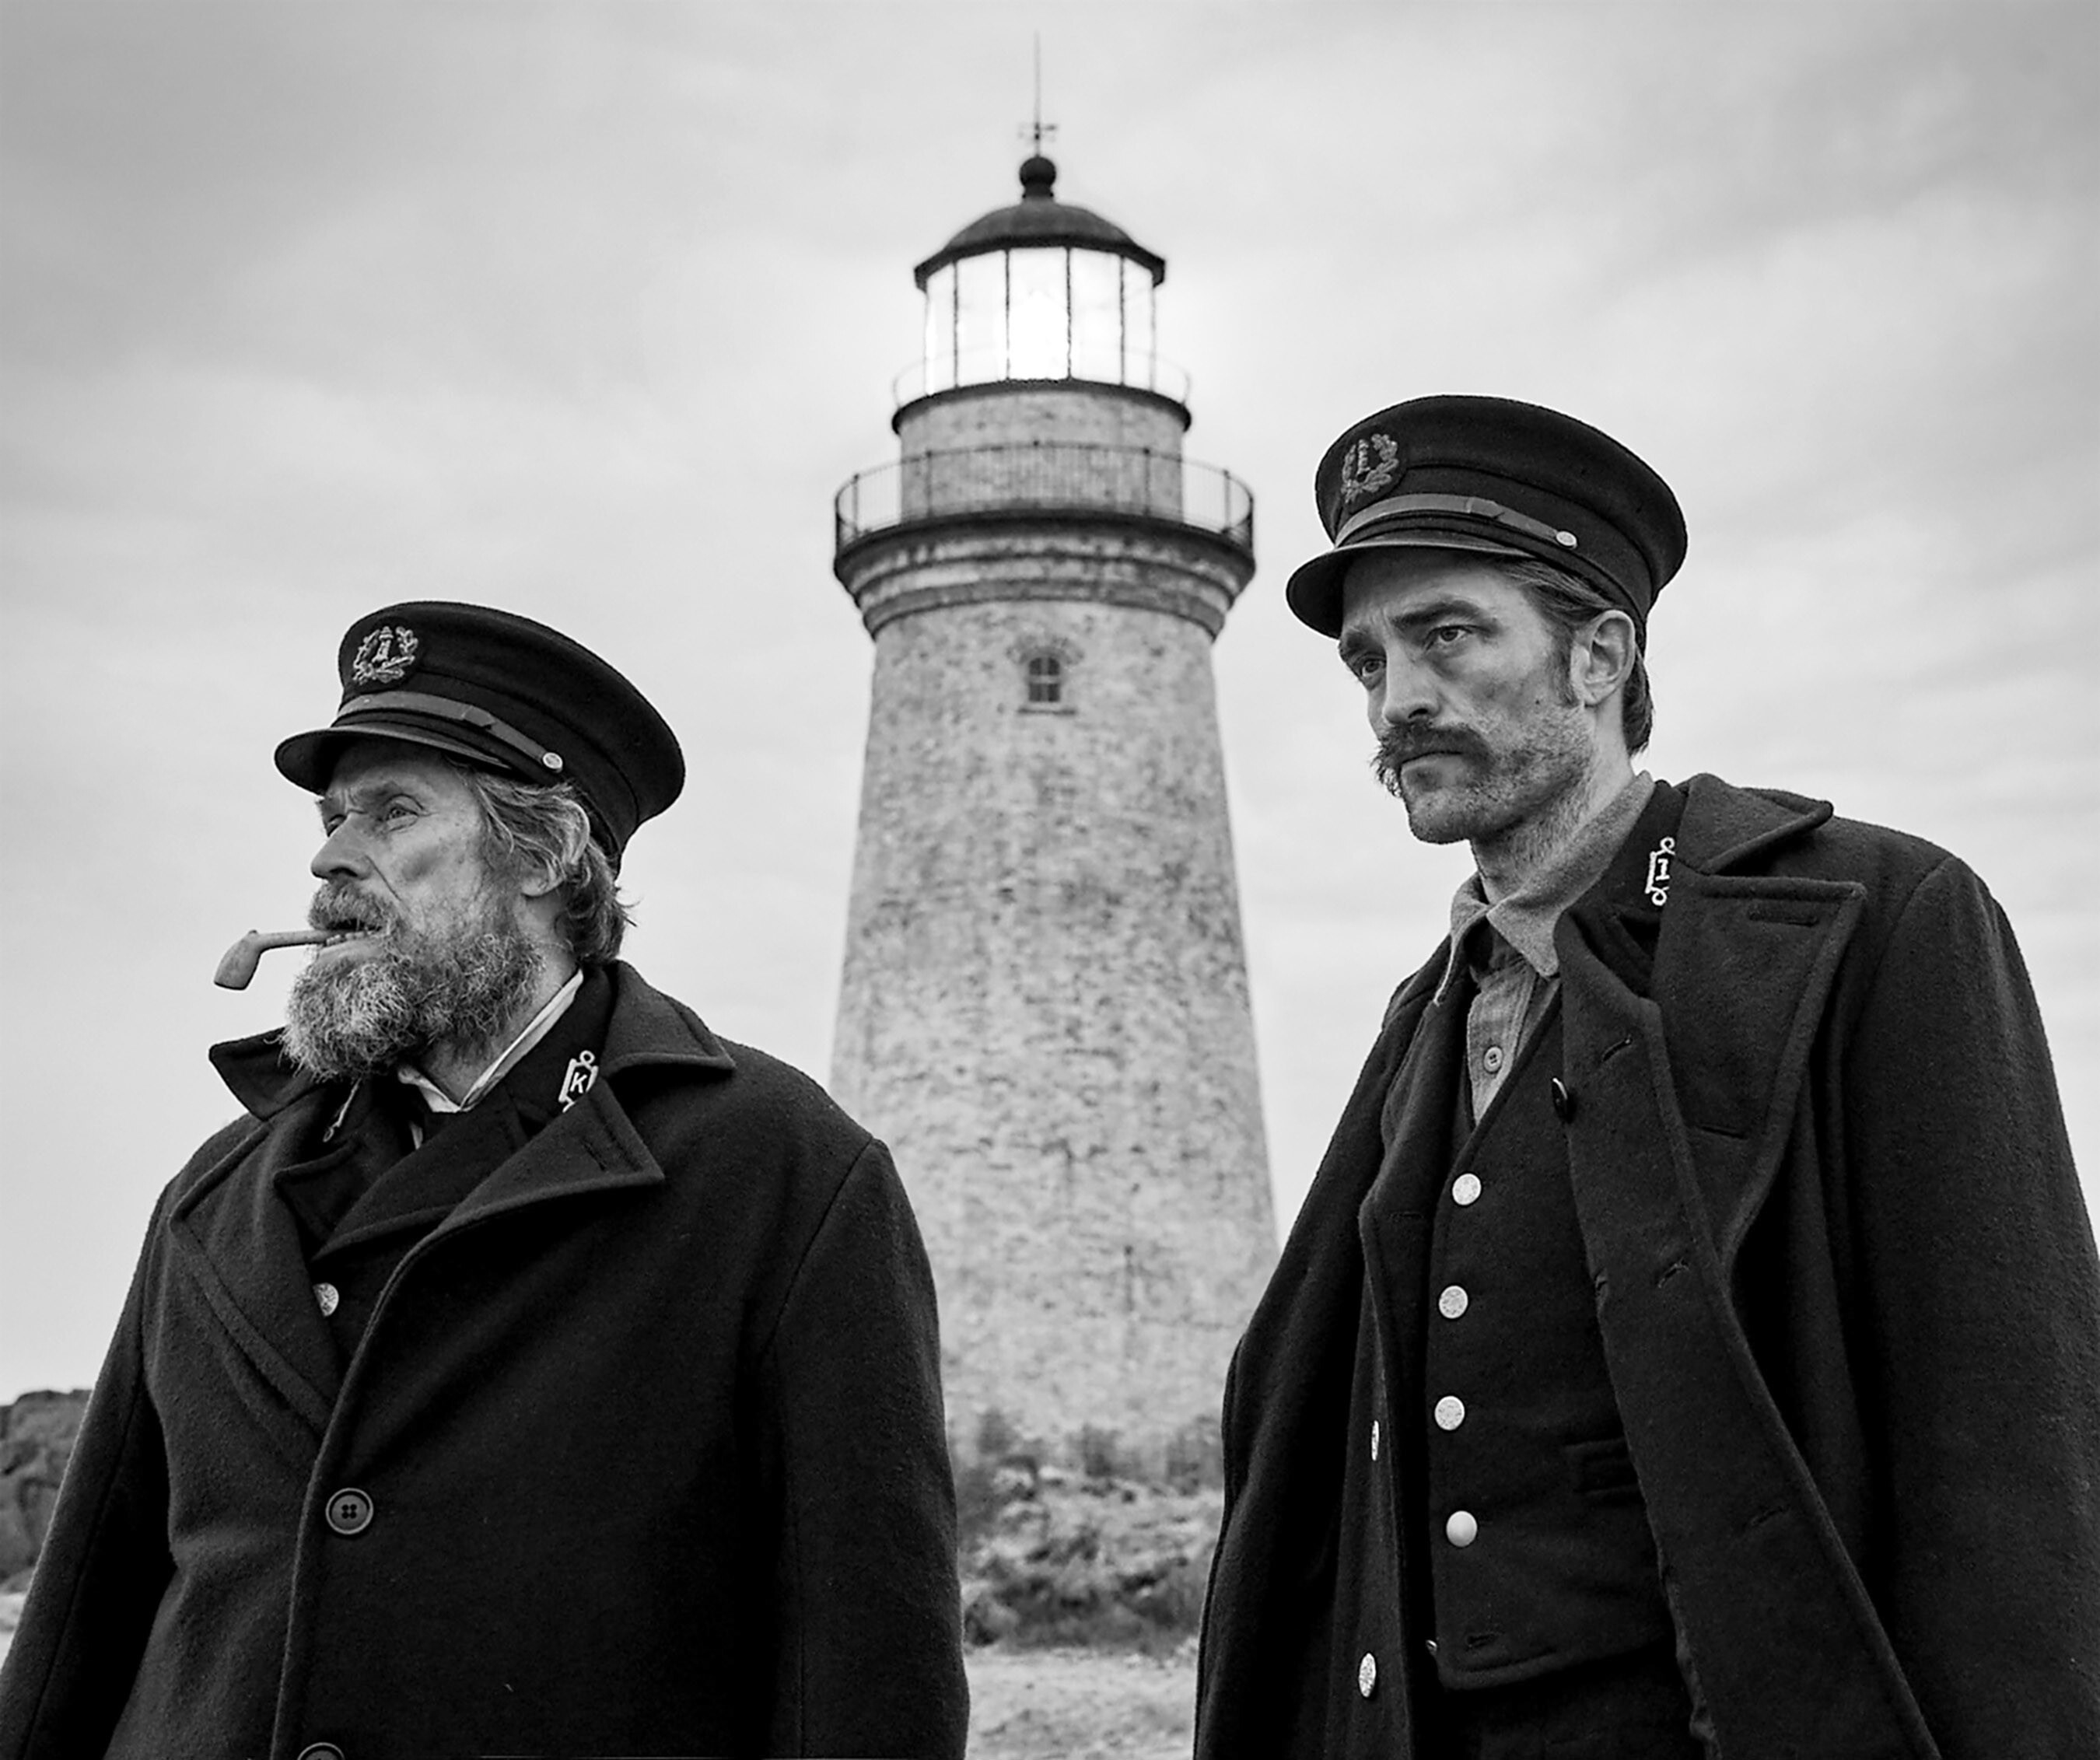 Willem Dafoe and Robert Pattison stand outside a lighthouse